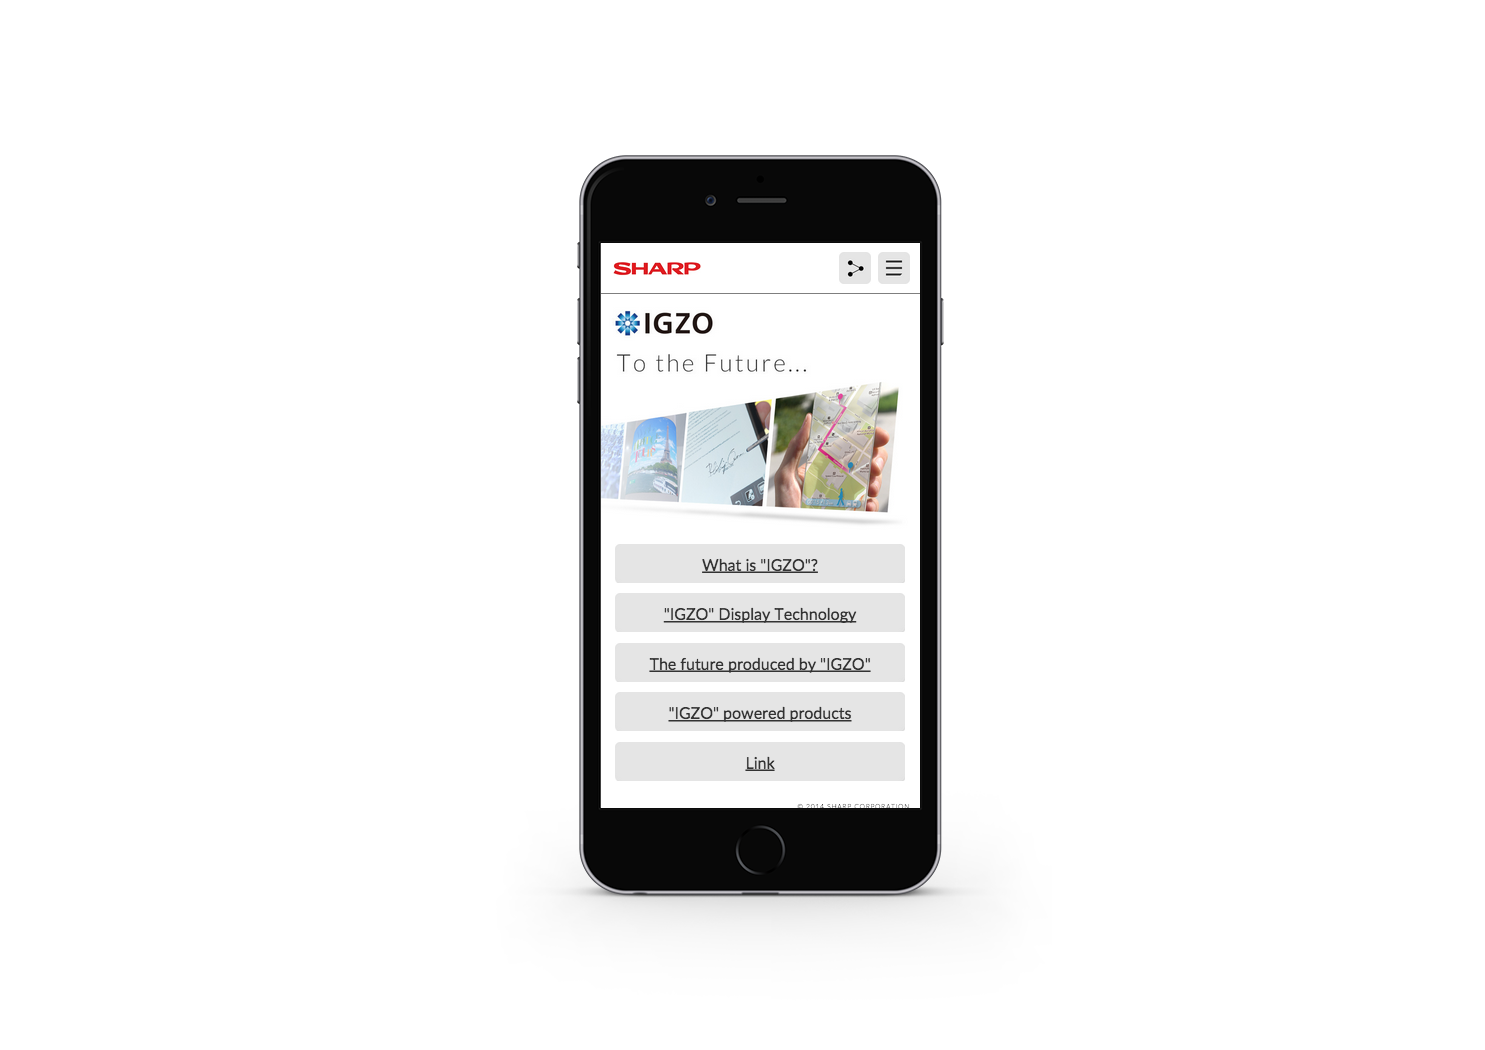 IGZO Official Smartphone site 2014